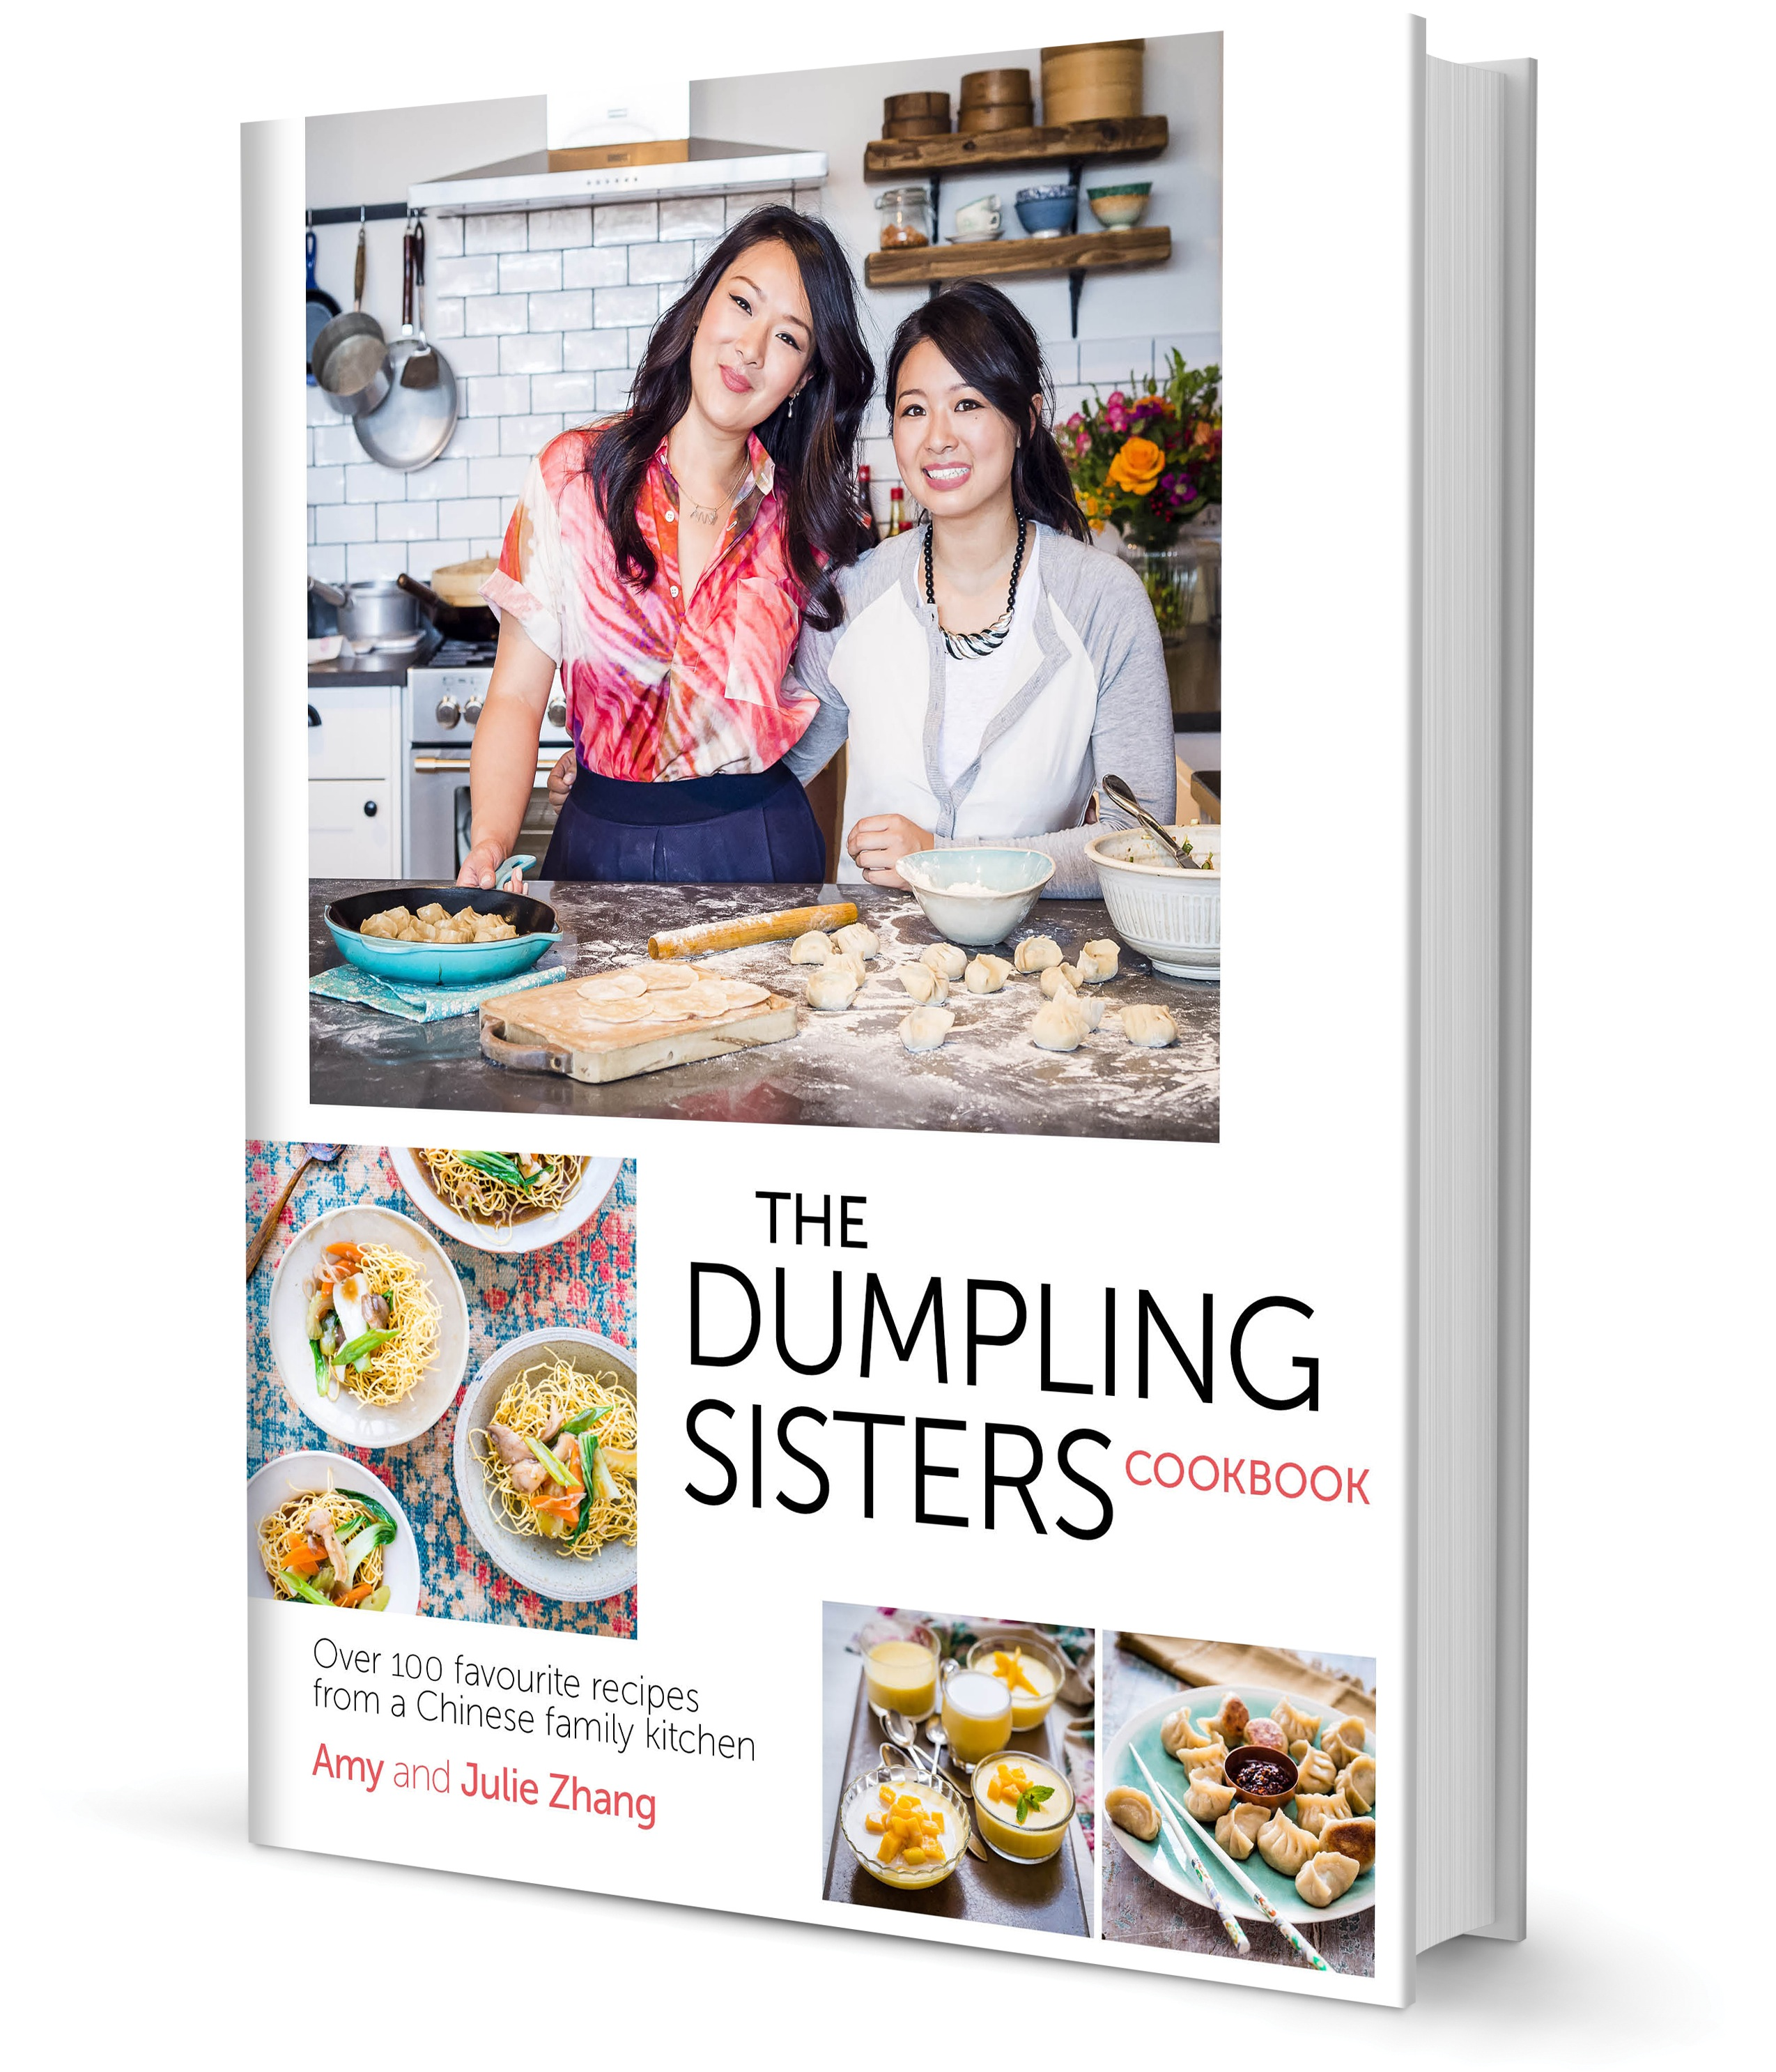 Get The Dumpling Sisters Cookbook here